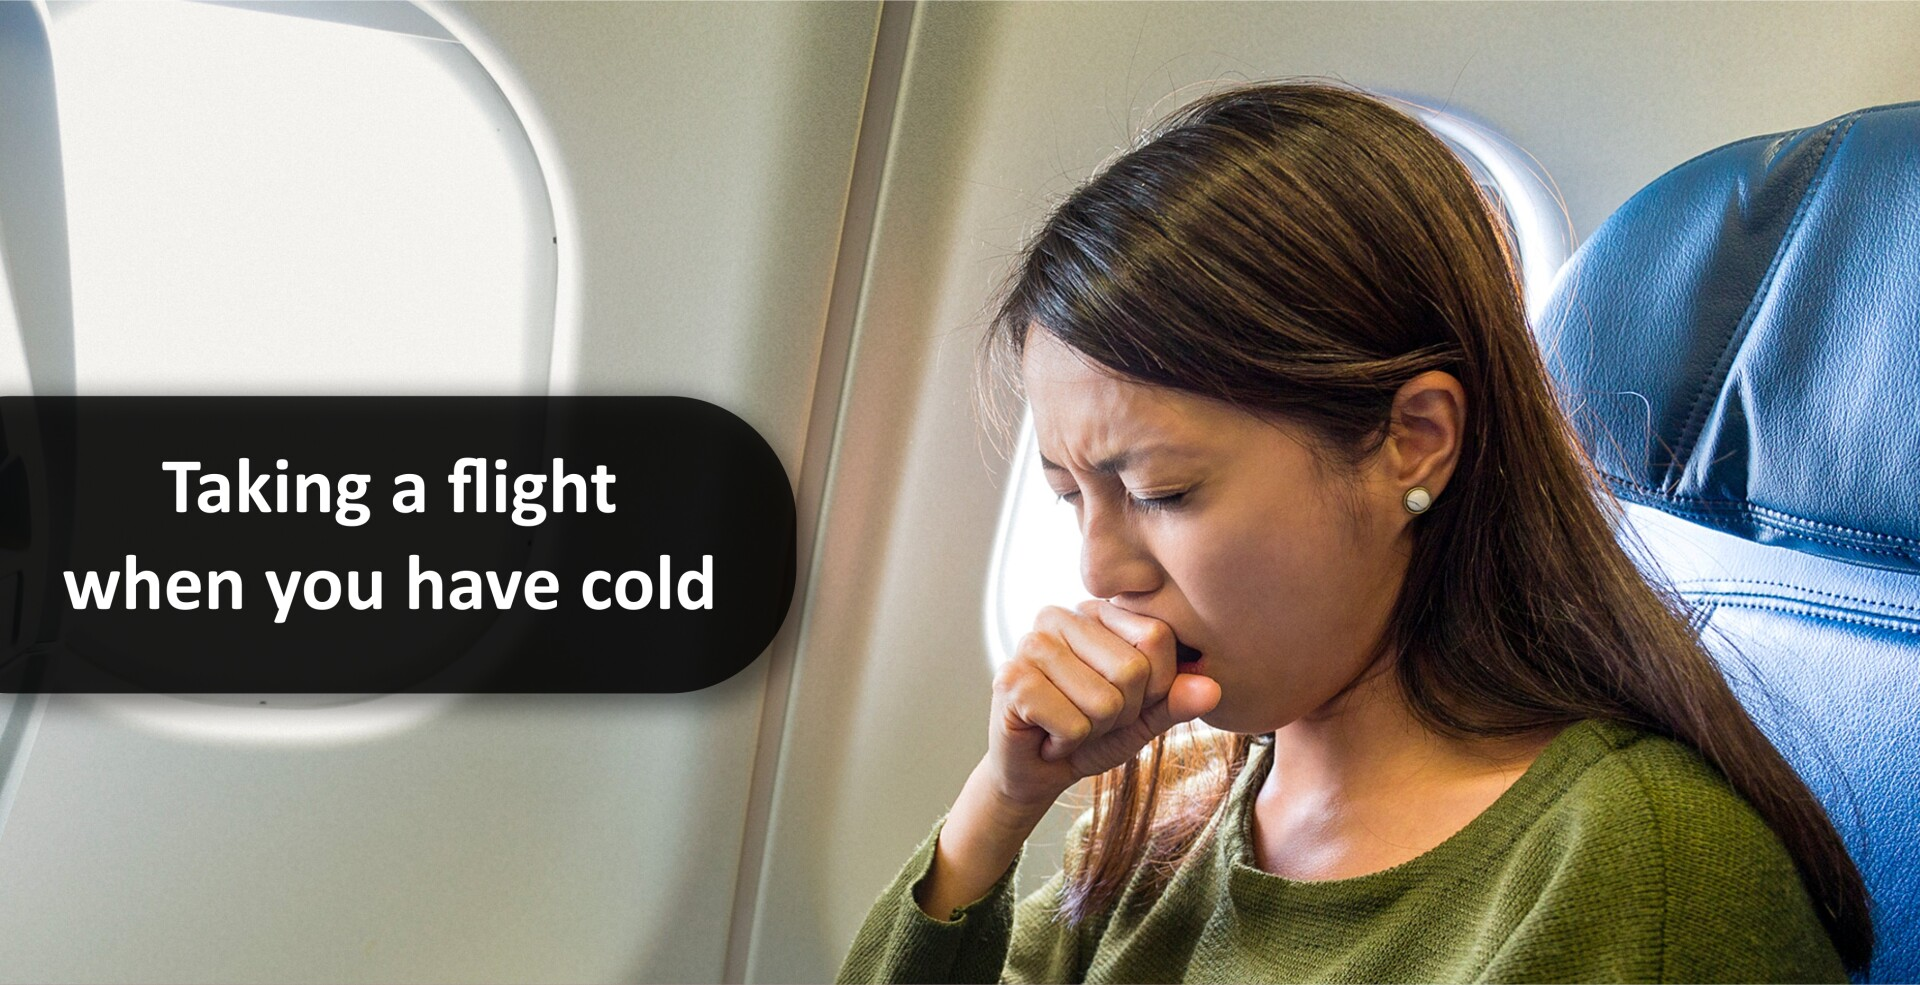 Taking a flight when you have cold